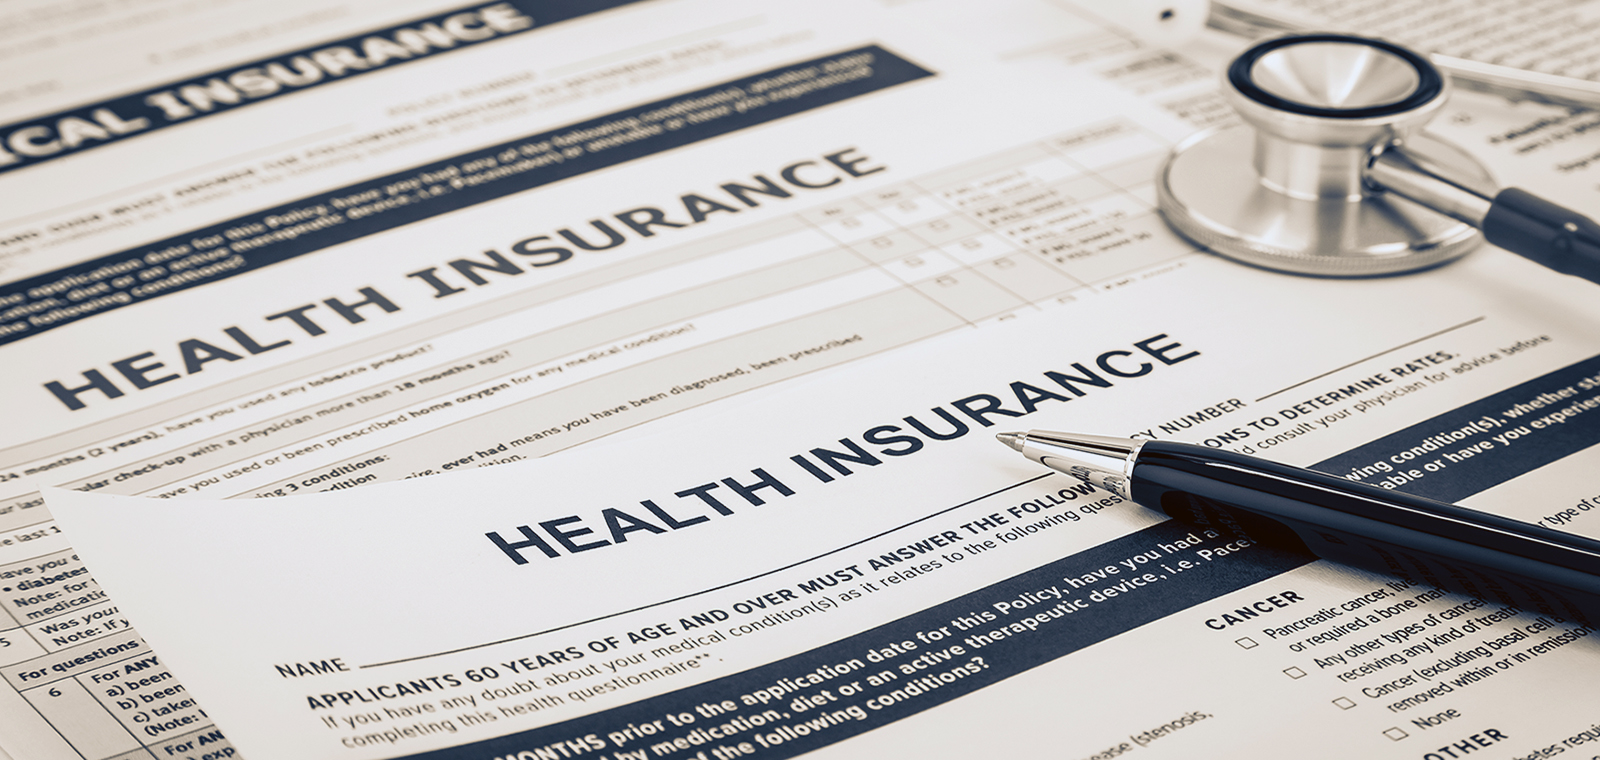 Decorative image of blurred Health insurance information